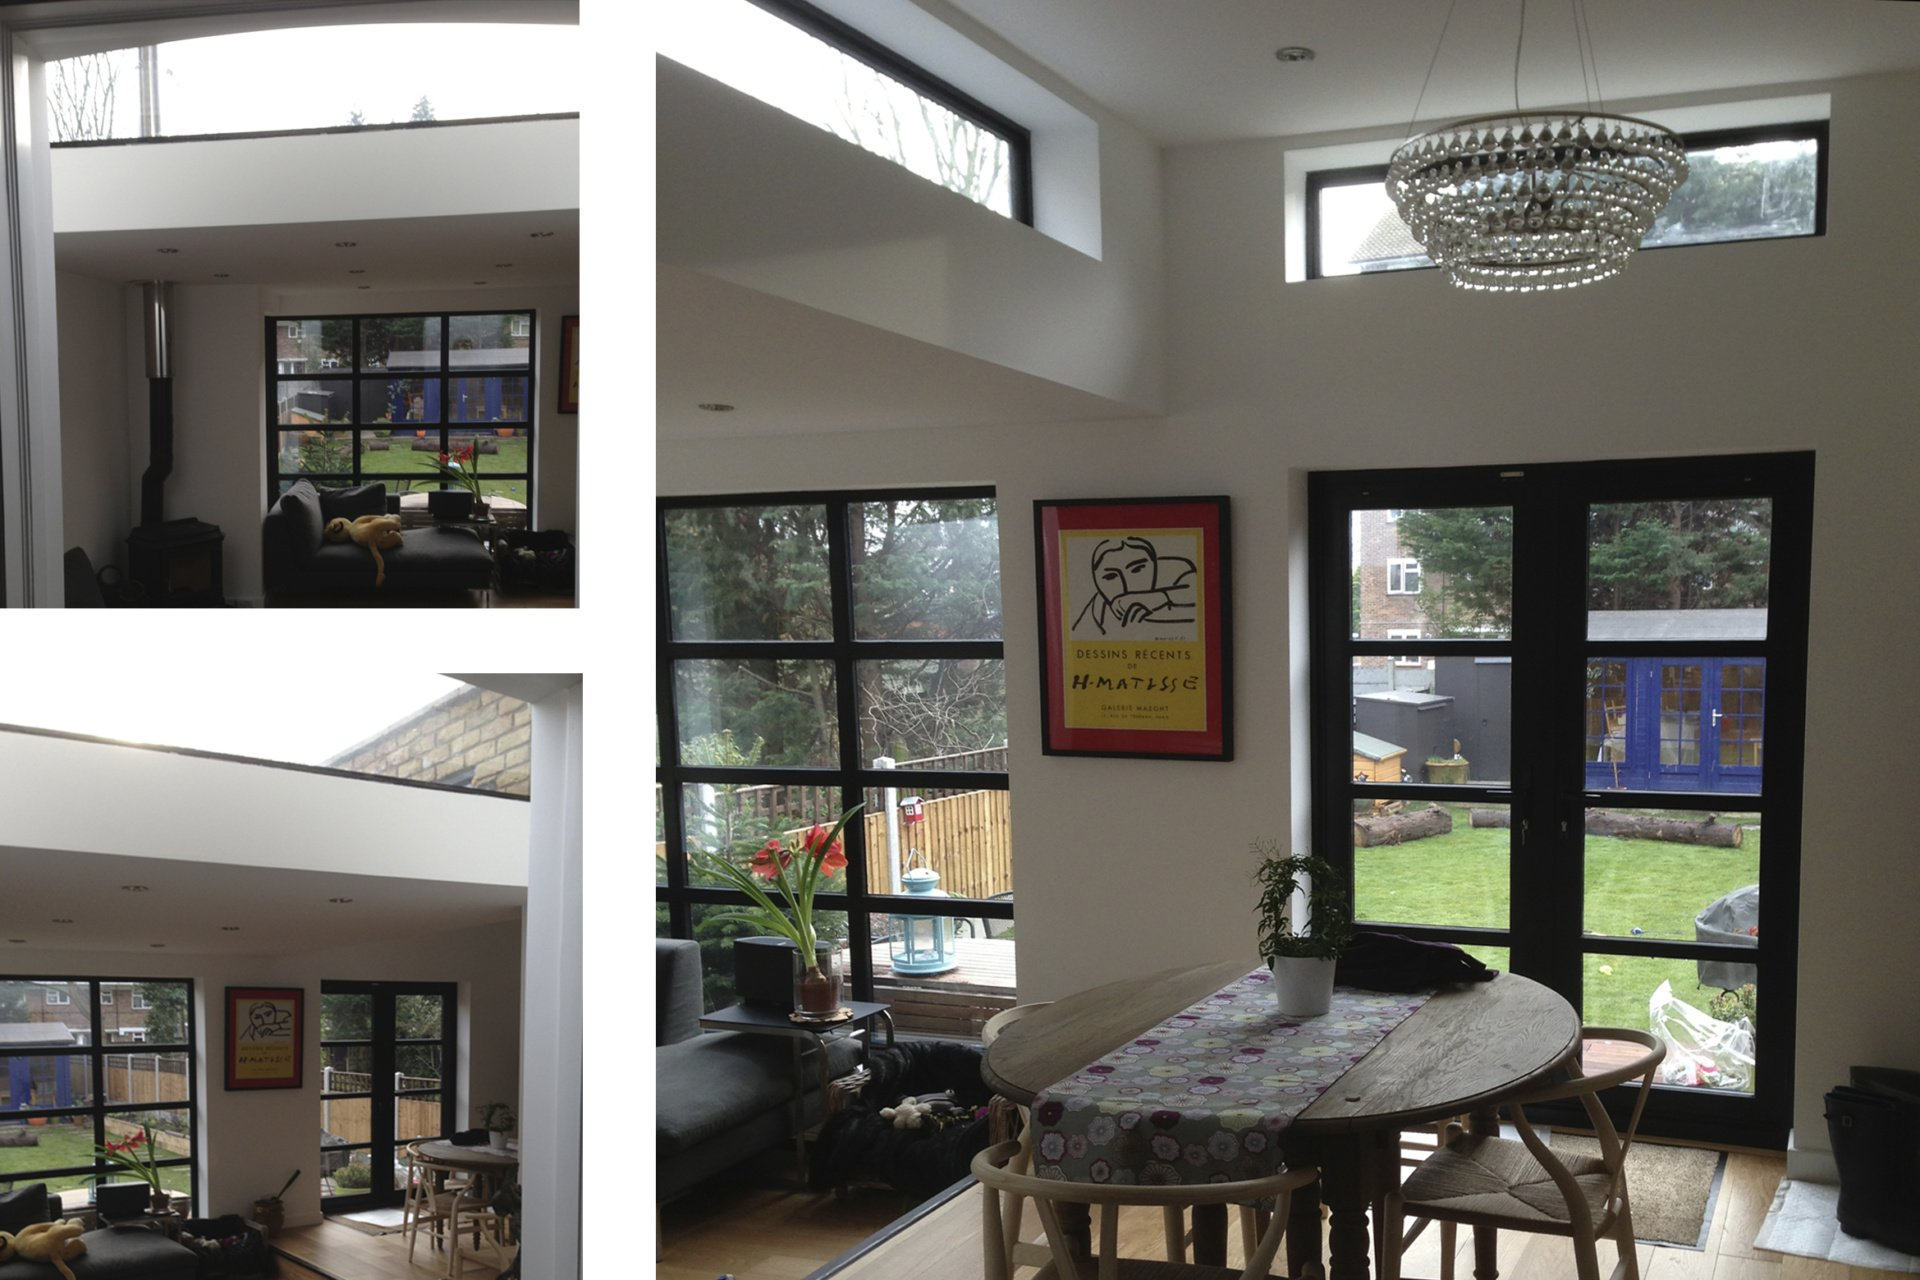 Grove Park Lewisham SE12 – House rear extension – Internal photos Grove Park, Lewisham SE12 | House extension